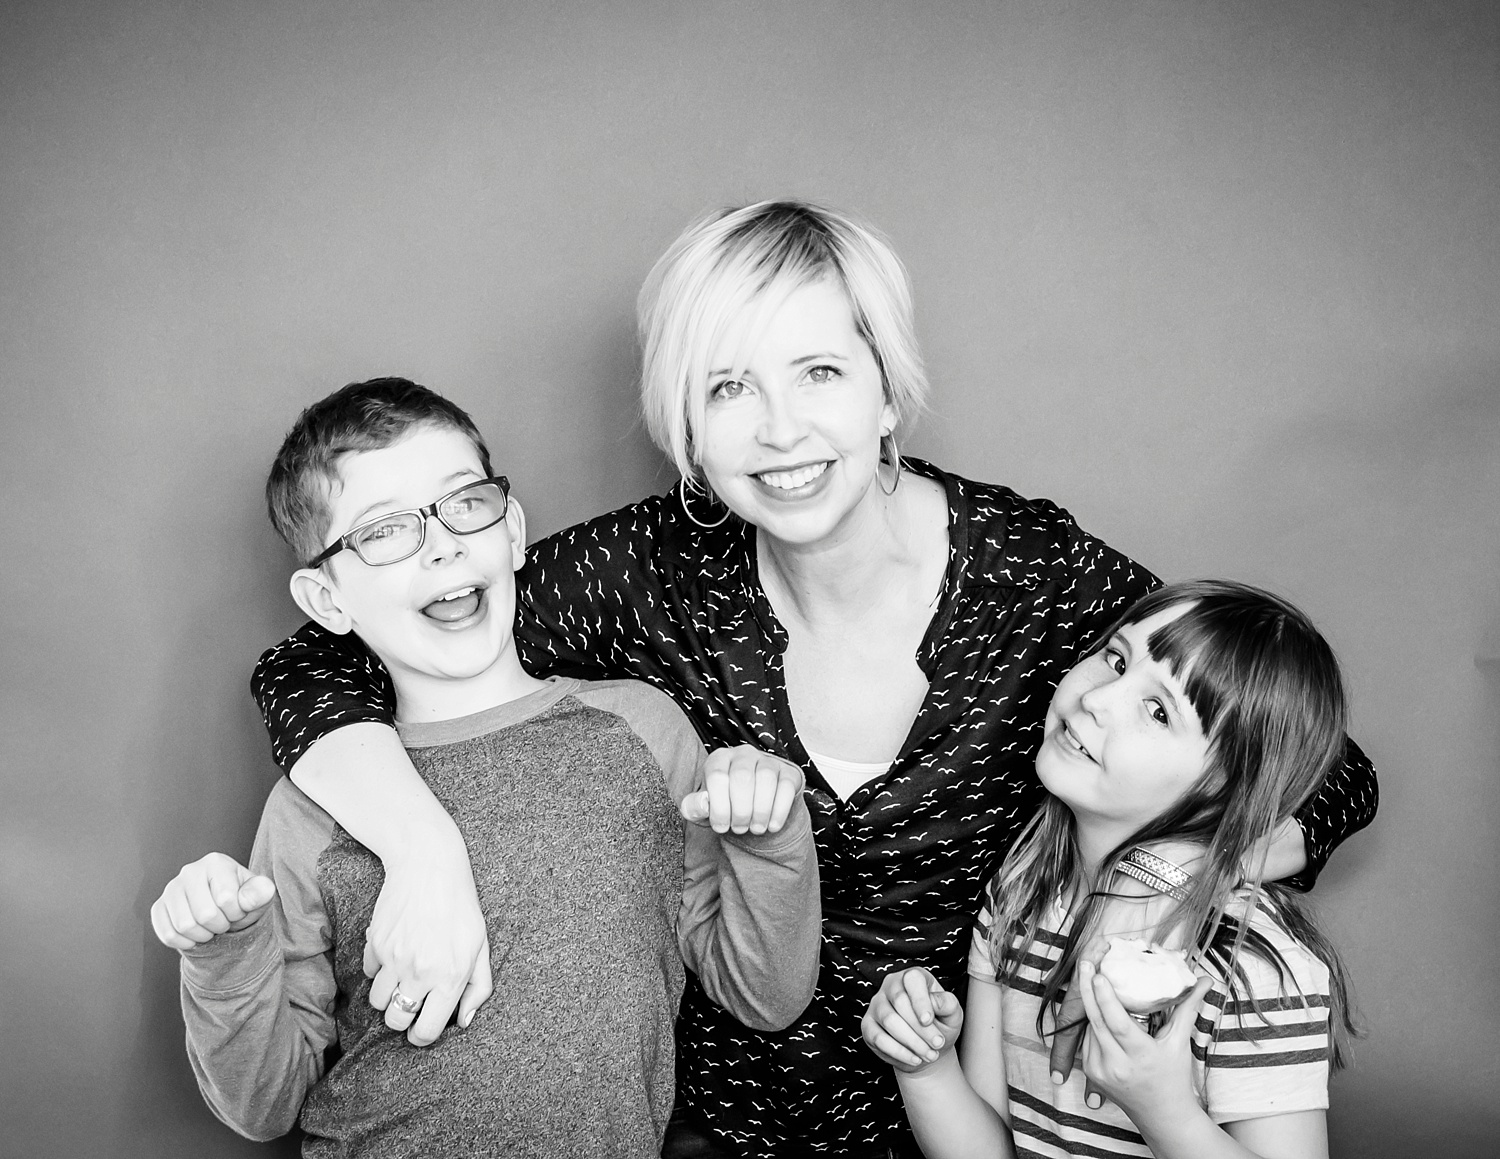 Becoming a mother was the first time I felt like I was in the correct role. It didn't necessarily come naturally to me, but I knew I would figure it out and be there for my kids. | Getting Unschooled is an unschooling blog about a family of four who recently started homeschooling their children in Denver, Colorado.